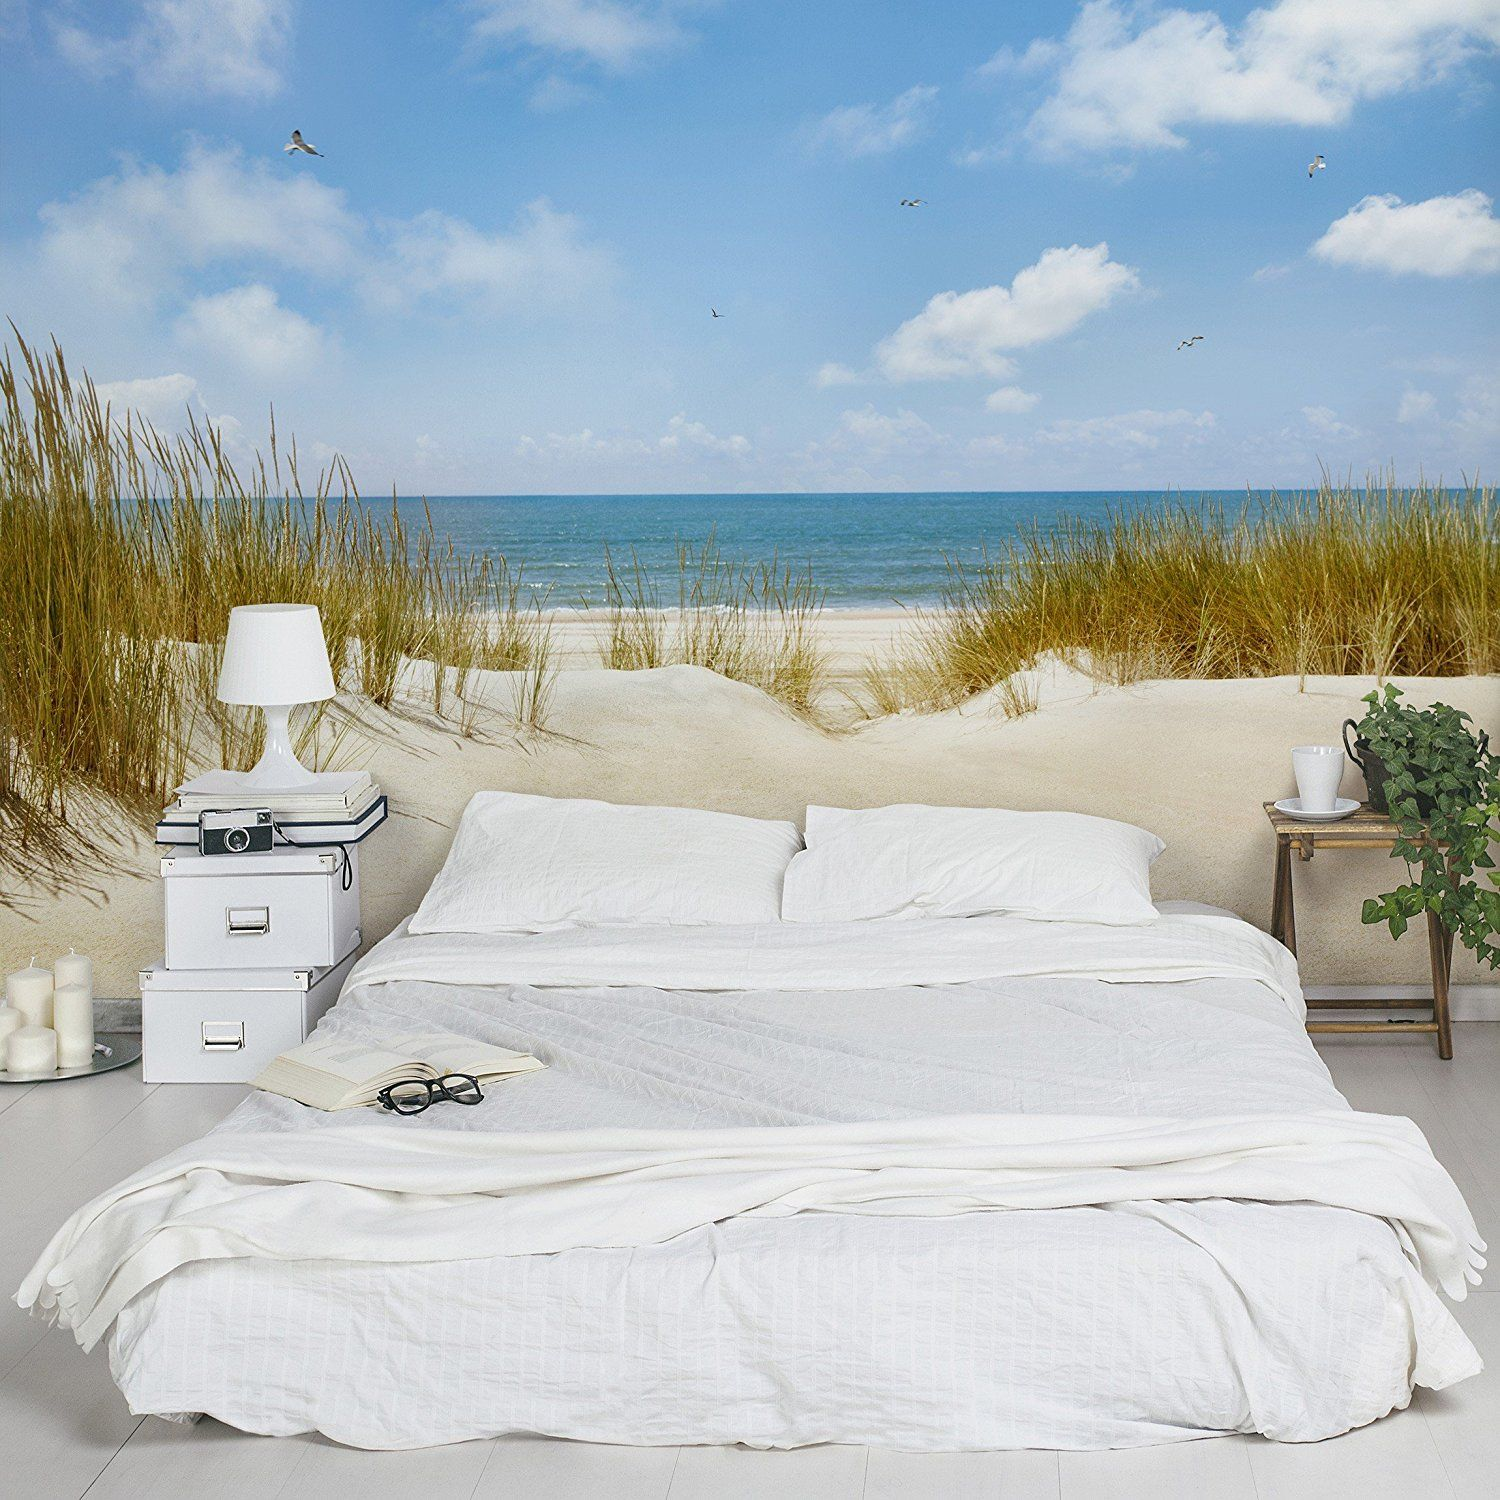 vlies fototapete strand an der nordsee das original xxl vliestapete querformat tapete. Black Bedroom Furniture Sets. Home Design Ideas